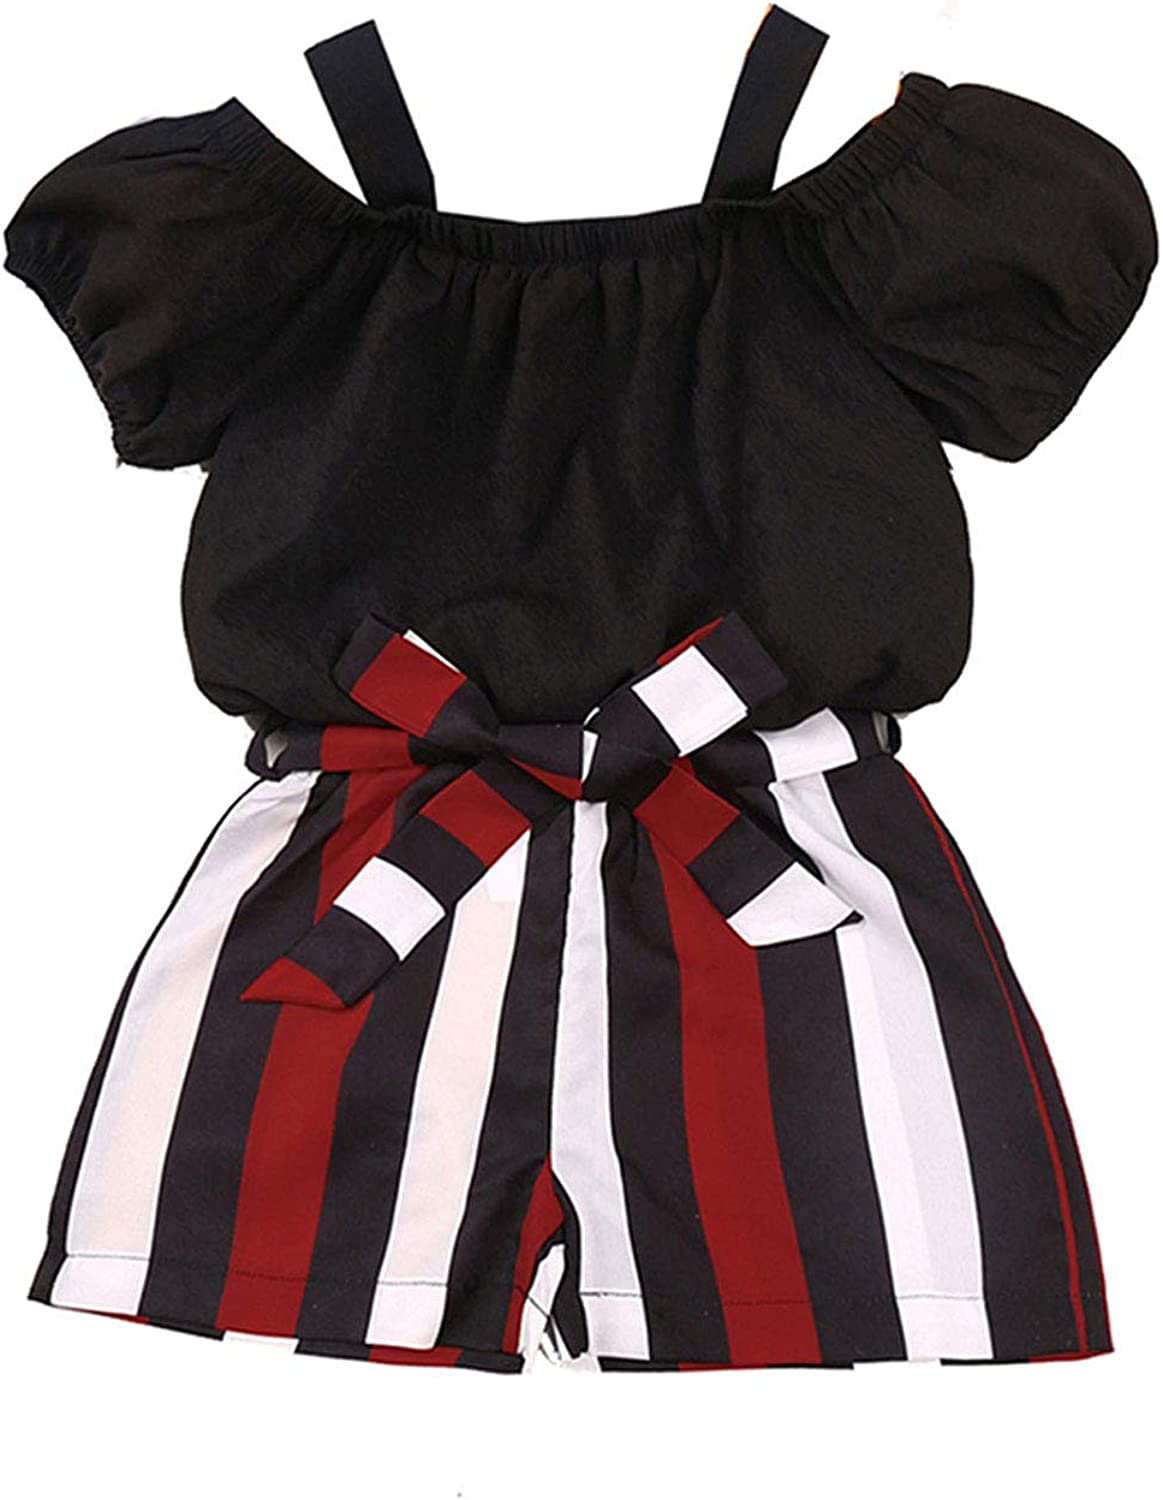 Toddler Baby Girls Summer 2 Piece Clothes Outfit Set Short Ruffle Puff Sleeve Crop Tops Stripes Shorts Sets